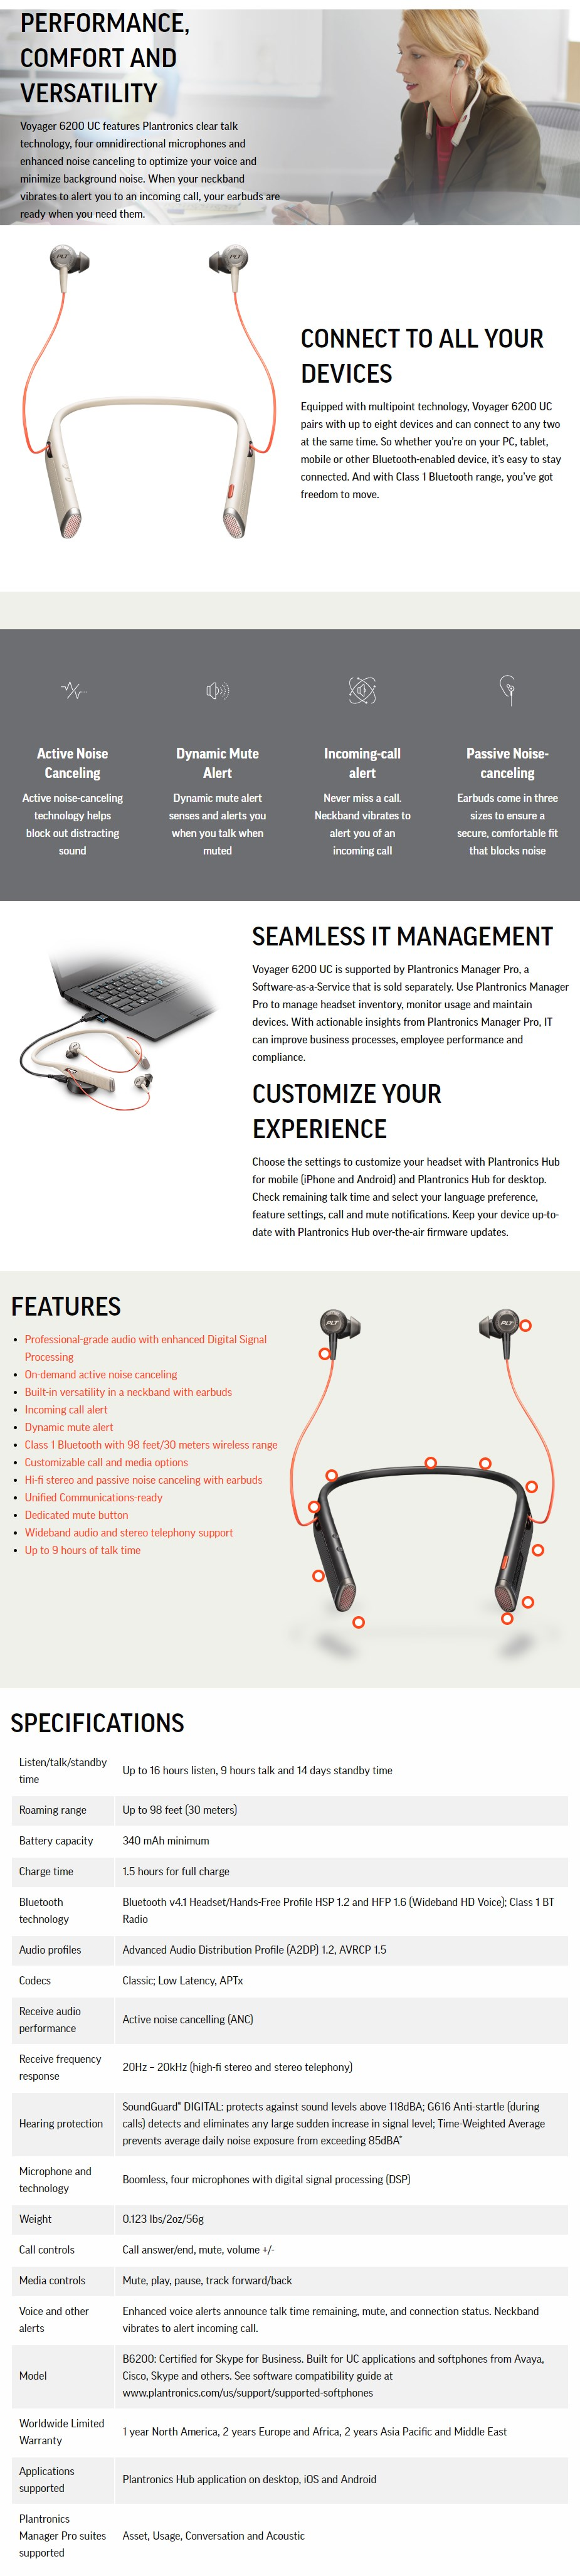 plantronics-voyager-6a200-uc-bluetooth-wireless-neckband-headset-ac27671-1.jpg